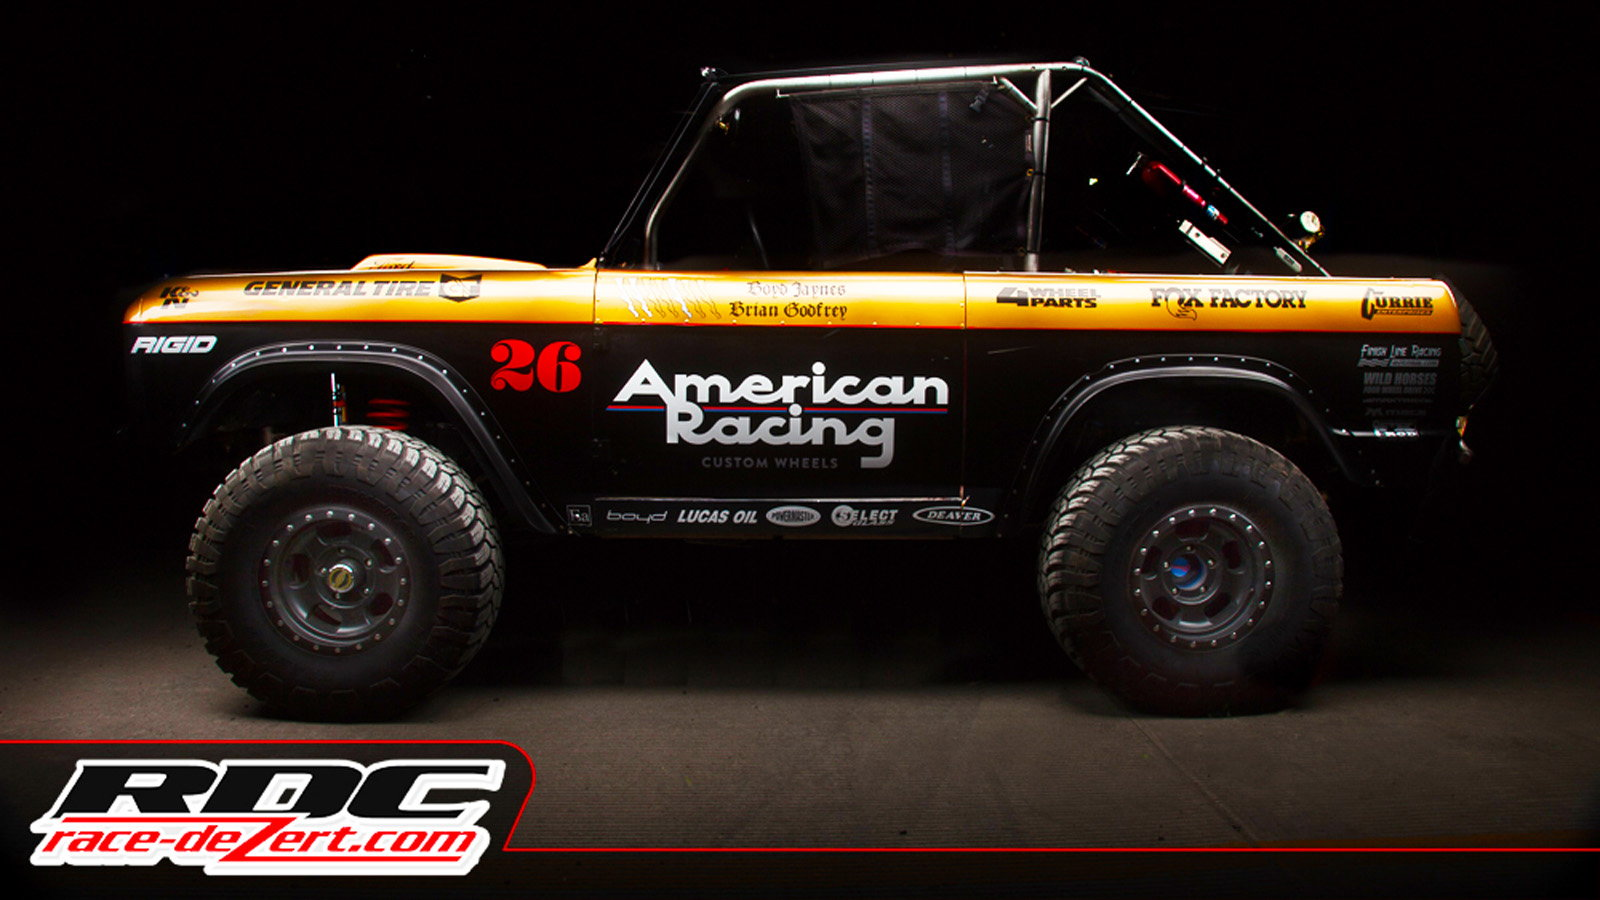 Devilish 1968 Ford Bronco Runs Loose in Off-Road Motorsports